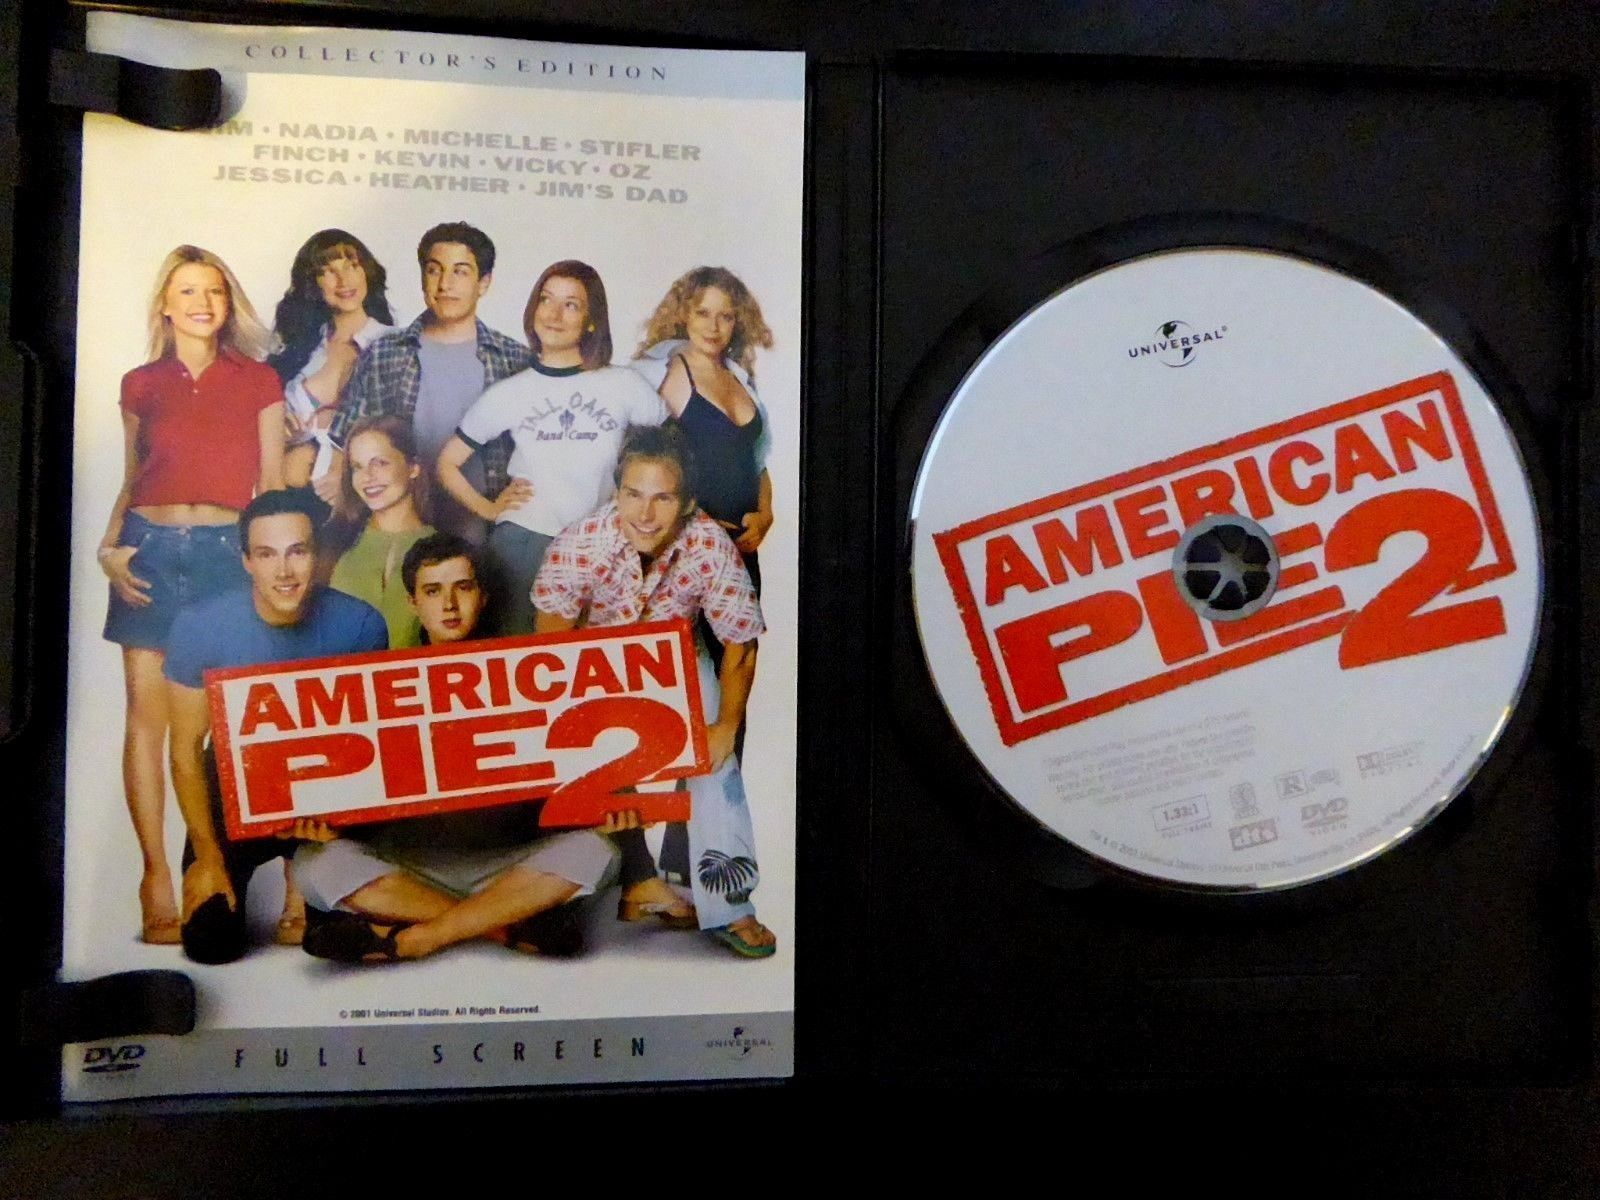 American Pie 2 Español american pie 2 (unrated full screen collector's edition